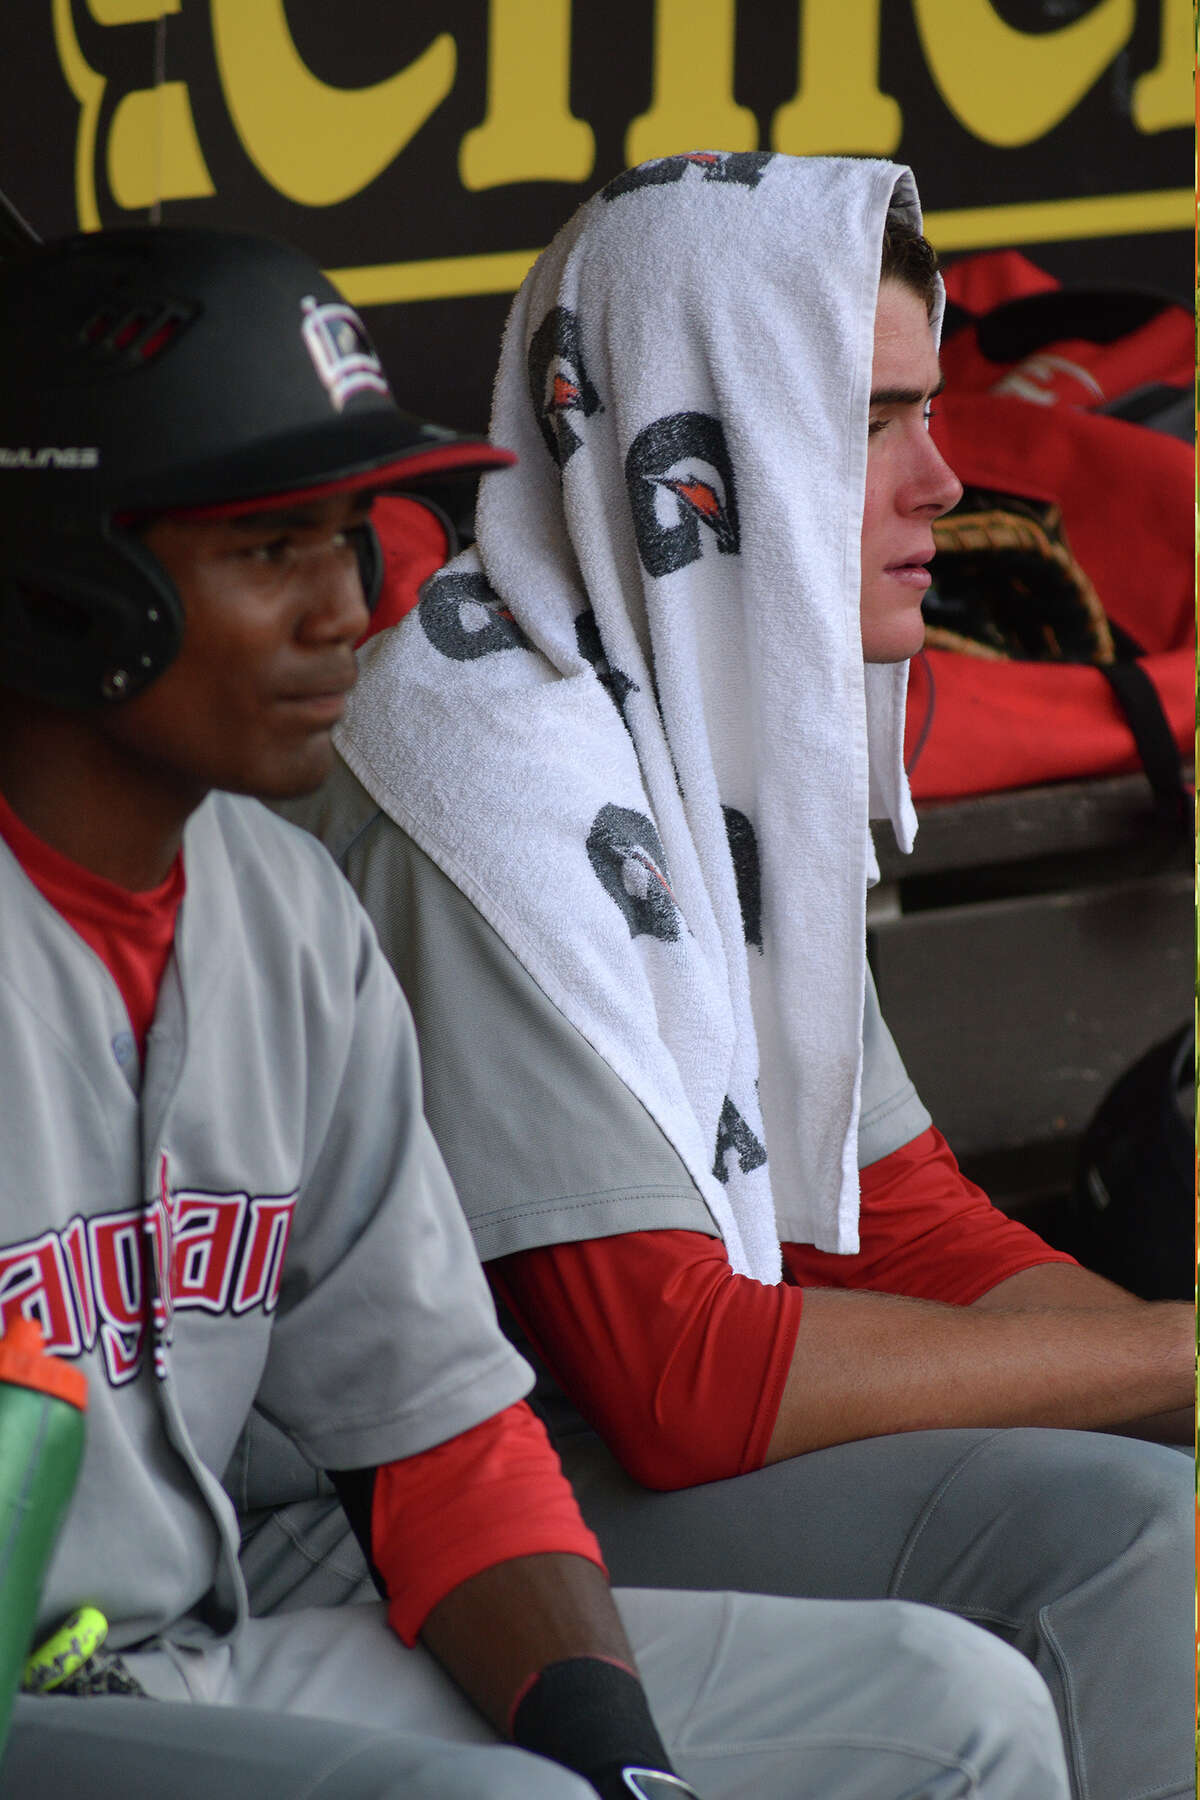 Langham Creek sophomore outfielder and leadoff hitter Korey Holland, left, and senior pitcher Connor Ferguson take a break from the heat during the top of the 5th inning against Dallas Jesuit in their 2016 UIL Baseball State Championships semi-final matchup at Dell Diamond in Round Rock on Friday, June 10, 2016. (Photo by Jerry Baker/Freelance)